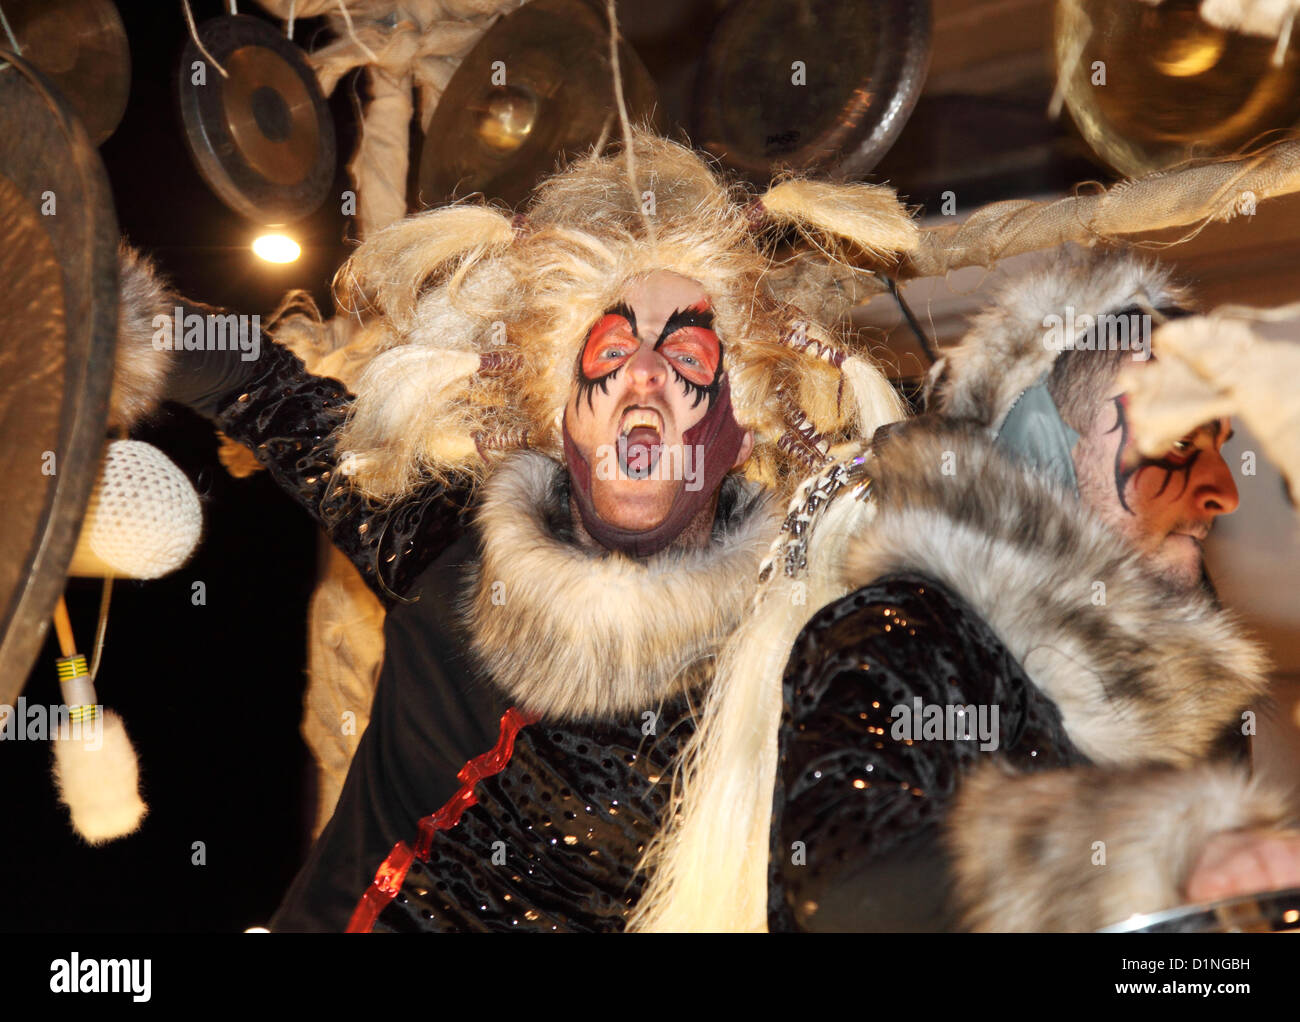 Man playing cymbal and shouting on float Newcastle new years eve 2012 party or winter carnival north east England Stock Photo